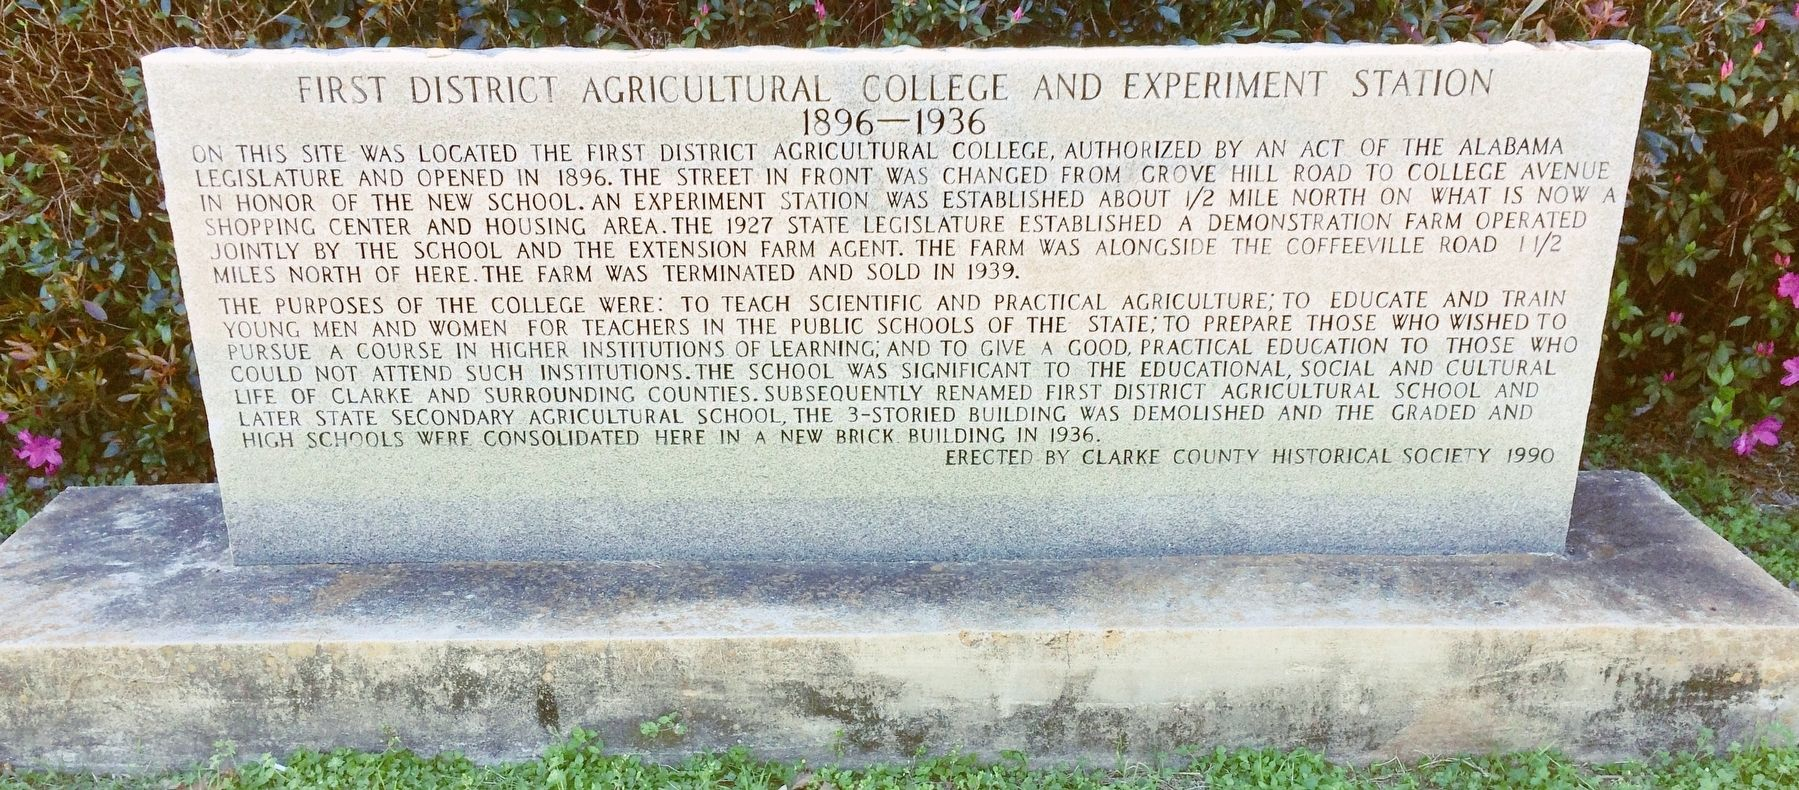 First District Agricultural College and Experiment Station Marker image. Click for full size.